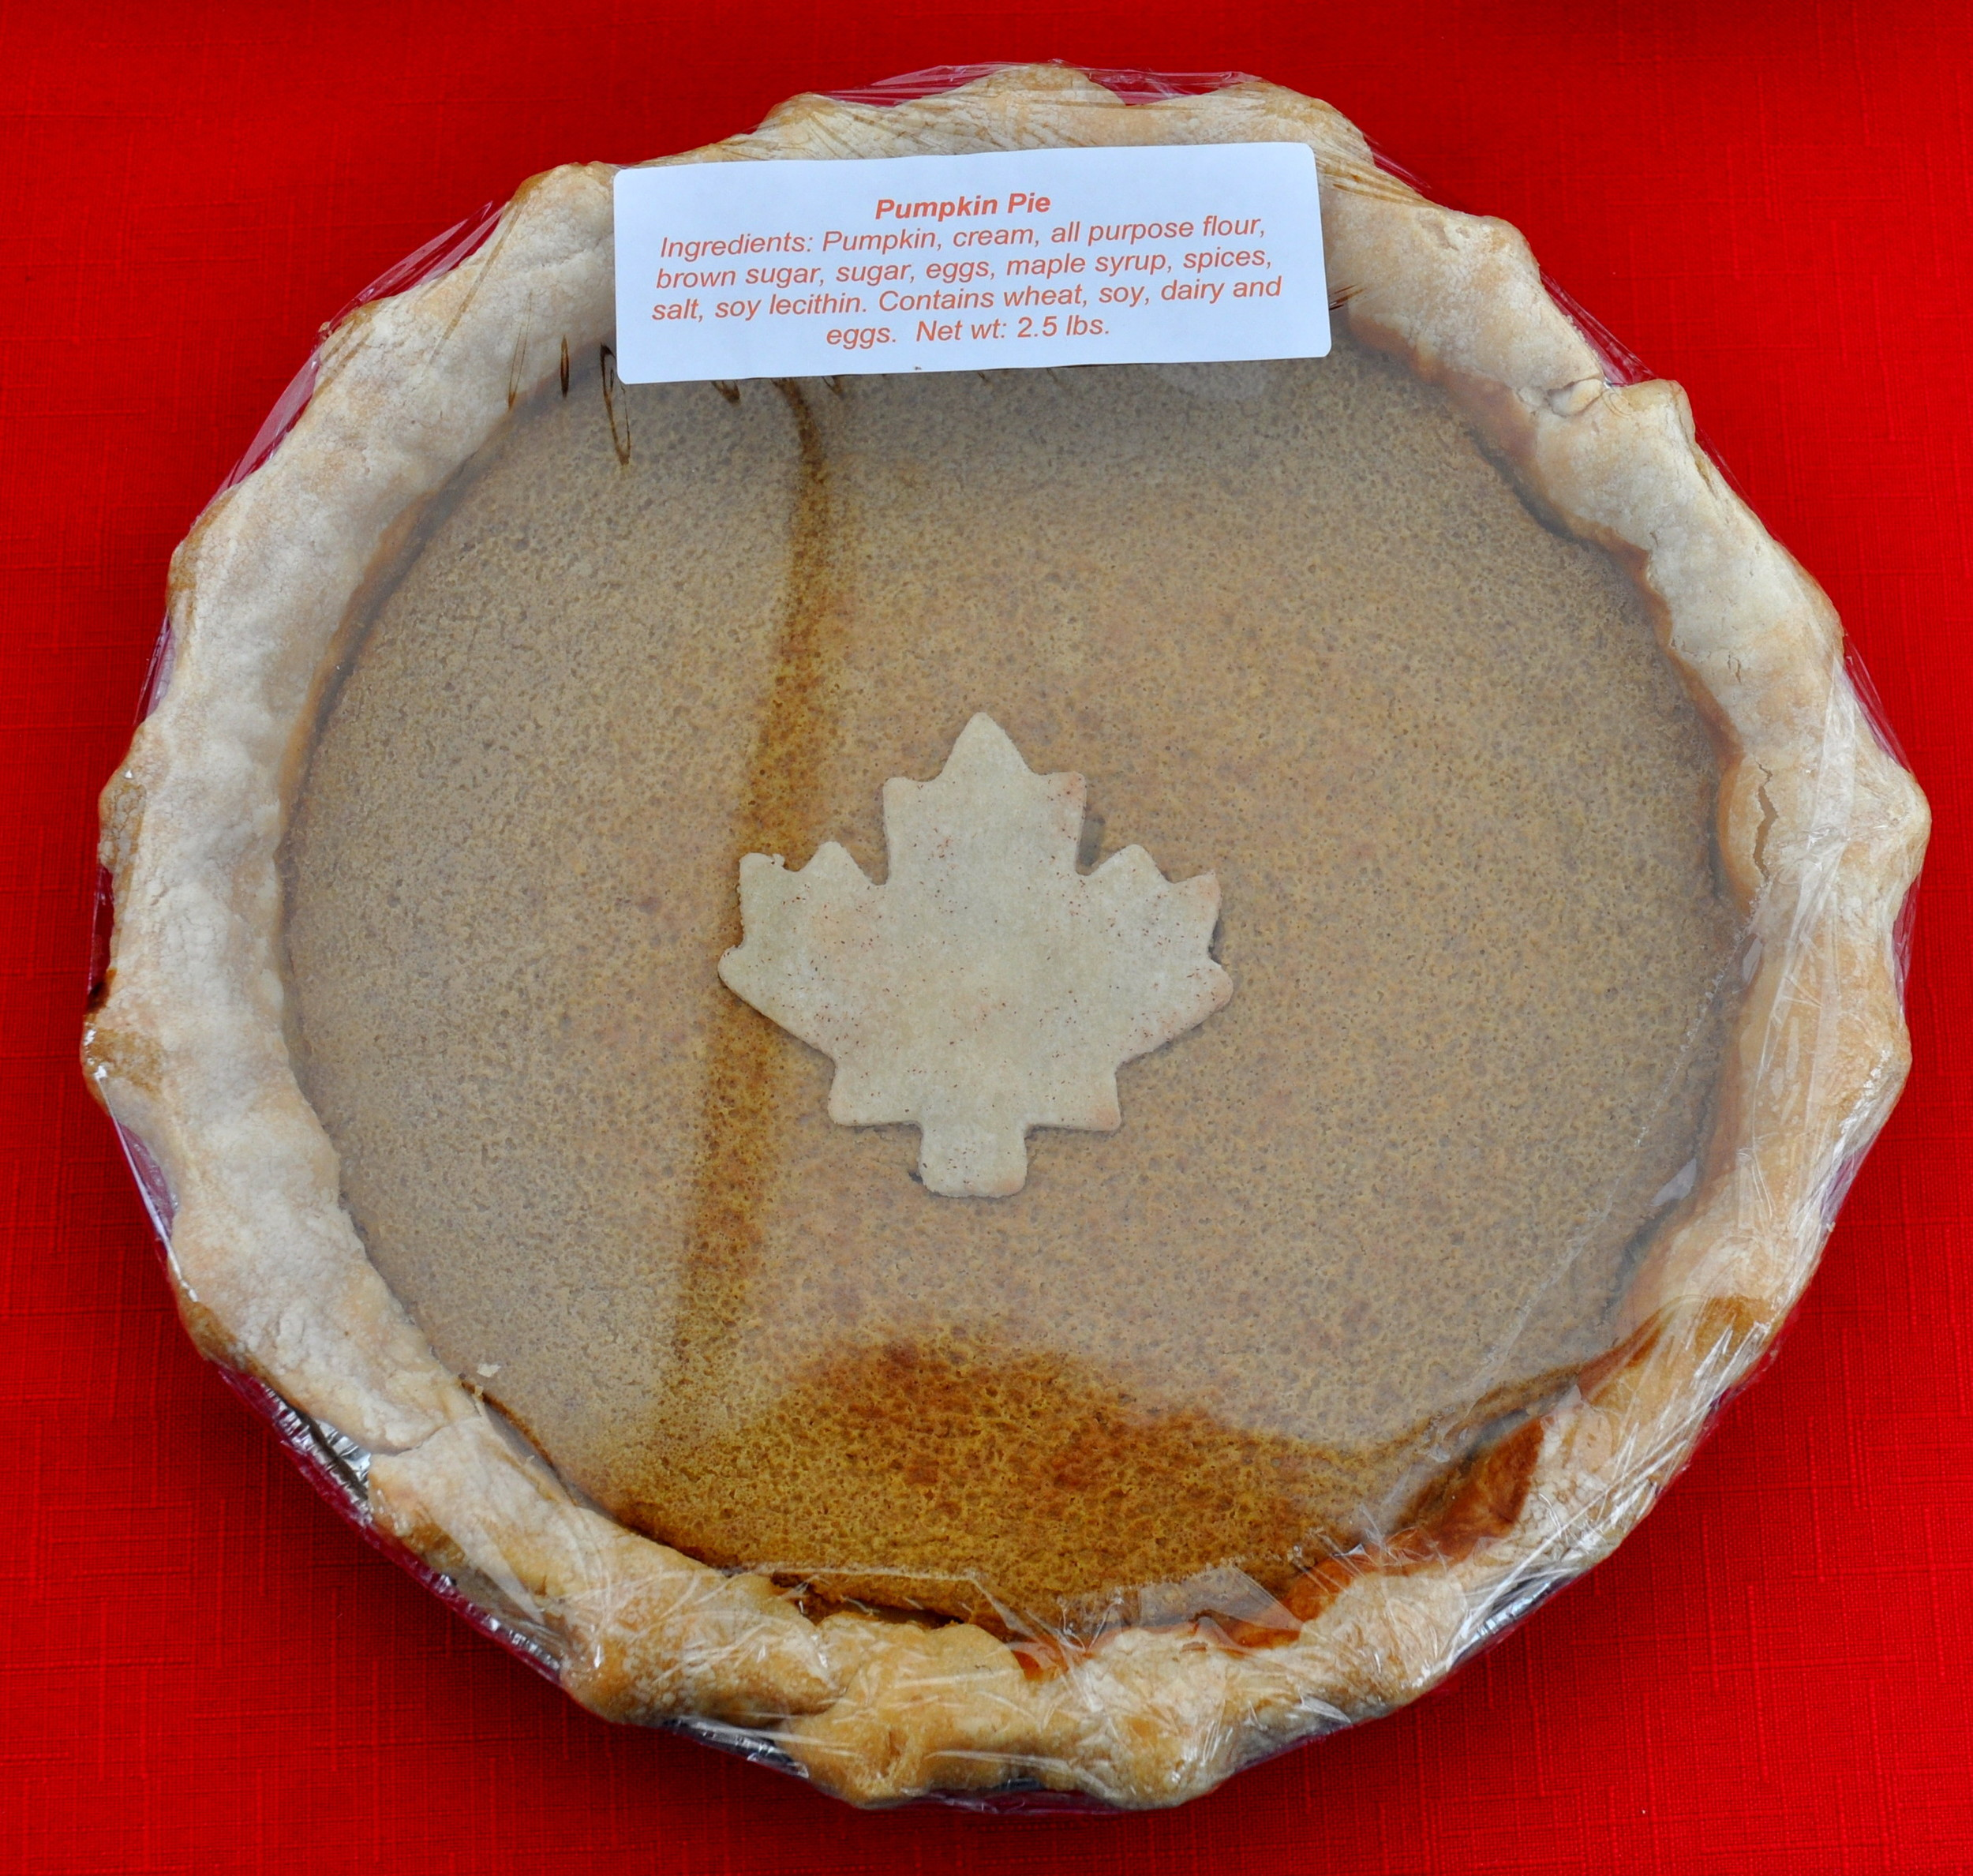 Pumpkin Pie from Deborah's Homemade Pies. Photo copyright 2012 by Zachary D. Lyons.